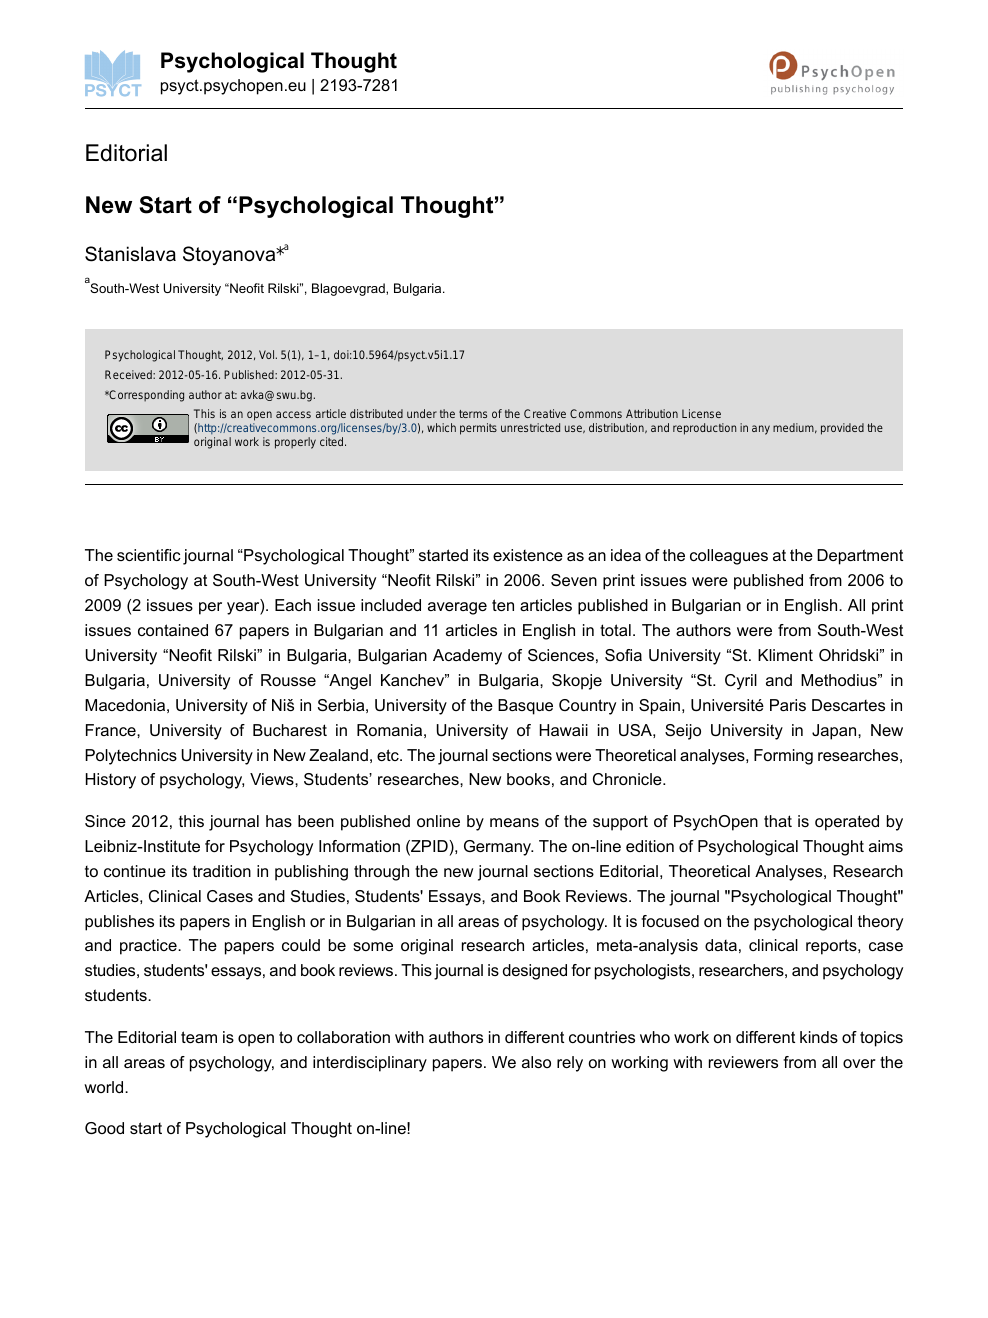 009 Research Paper Latest Papers On Psychology Fearsome Topics For Criminal In Forensic Full